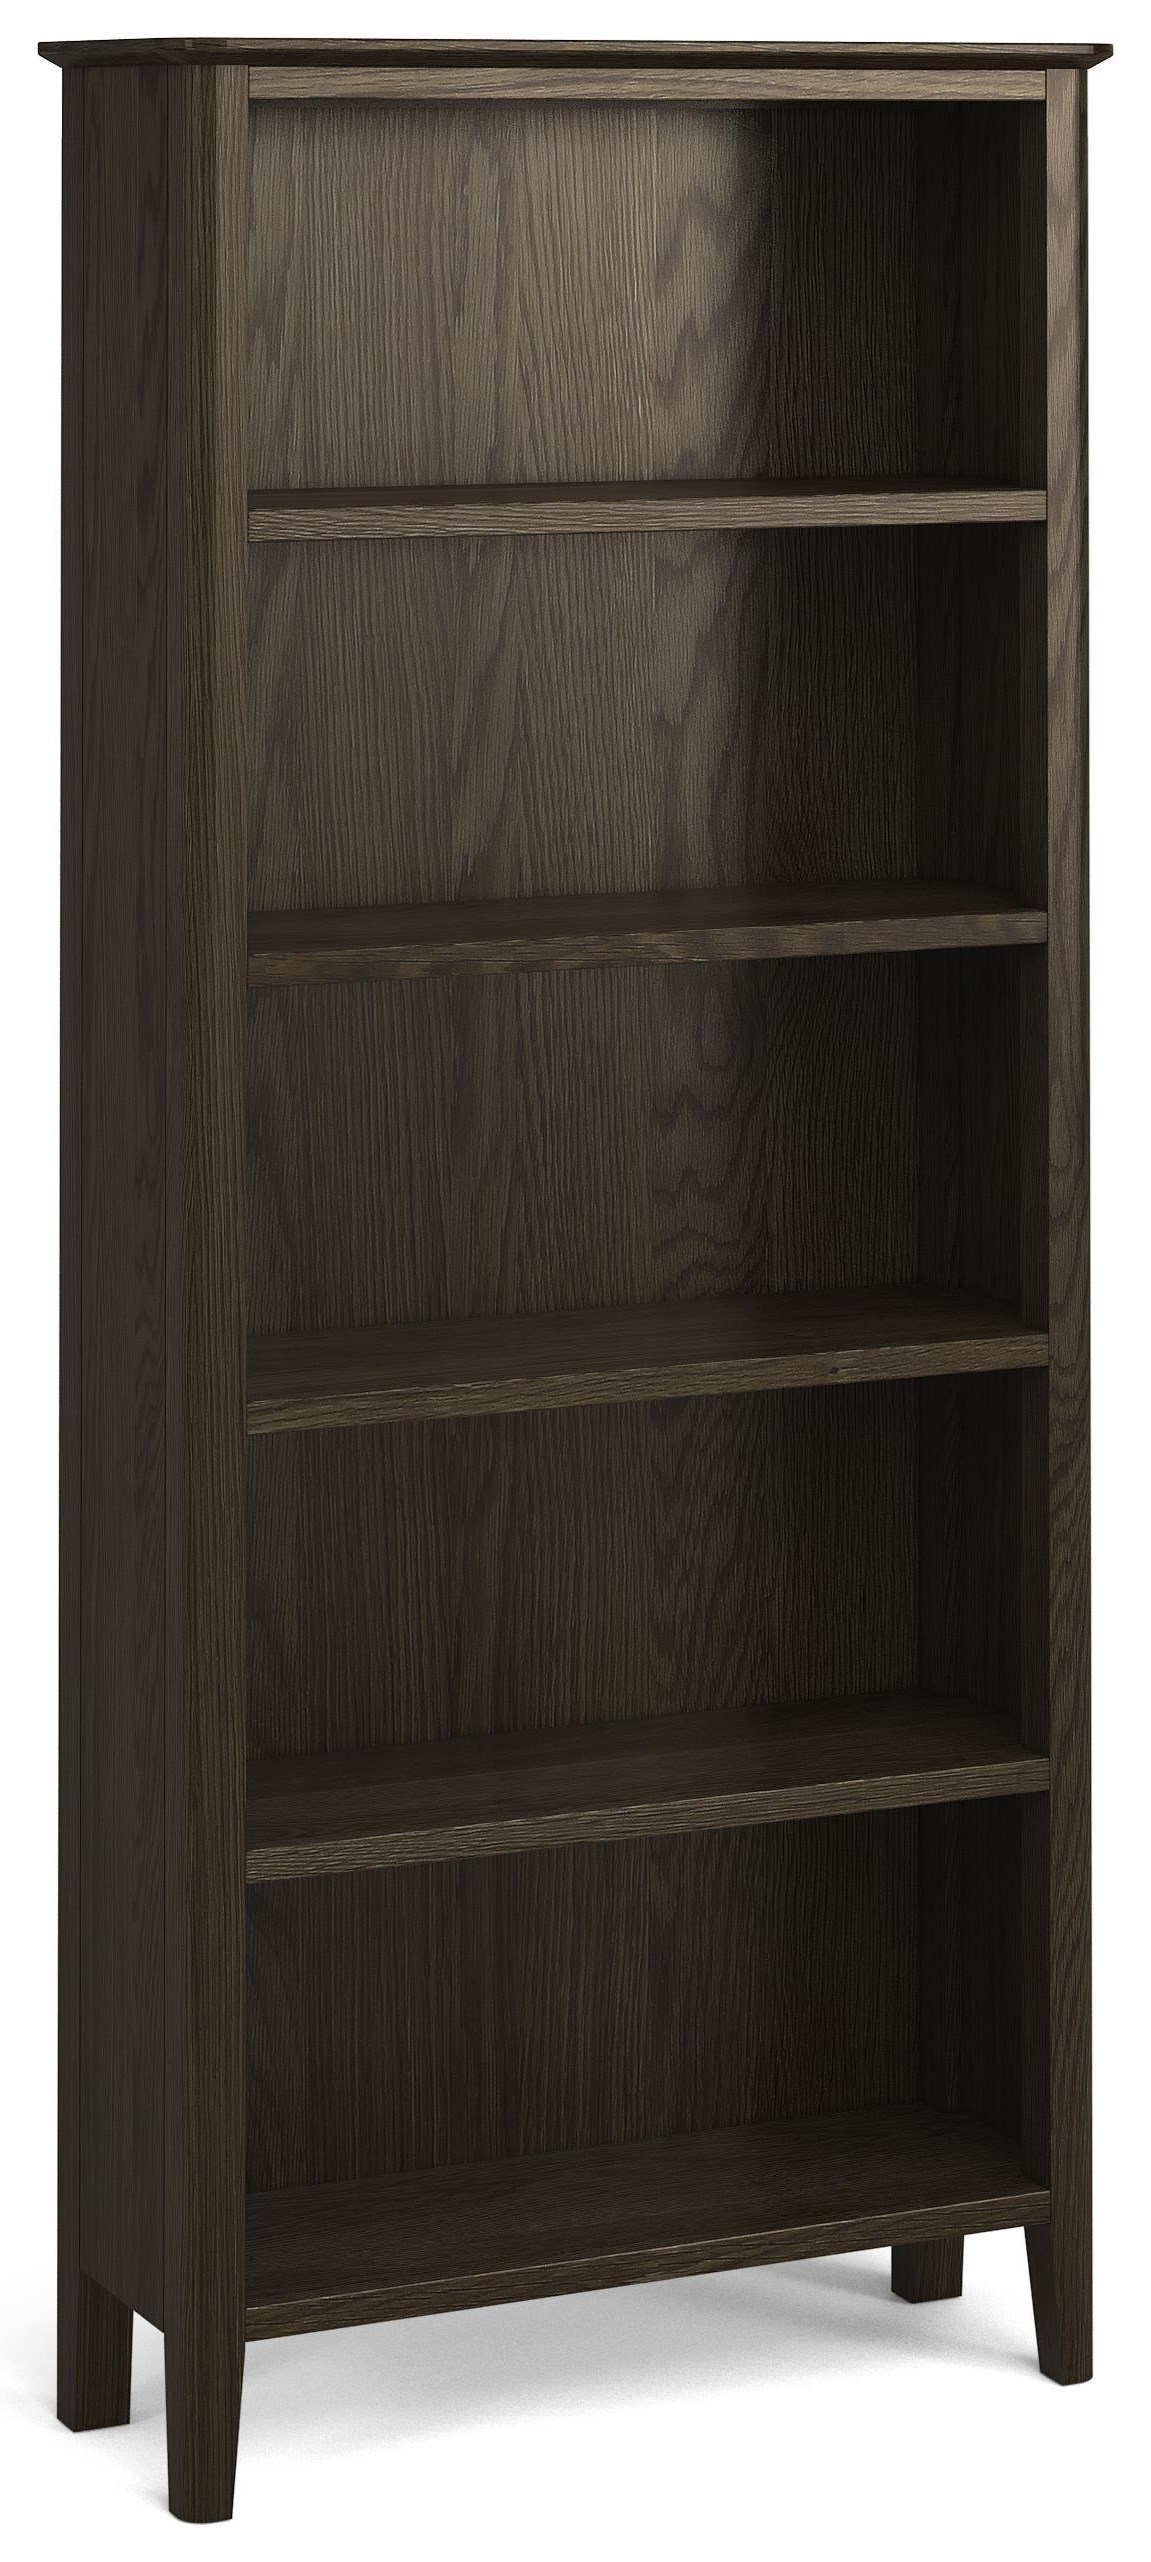 Amherst Bookcase by Global Home at Red Knot